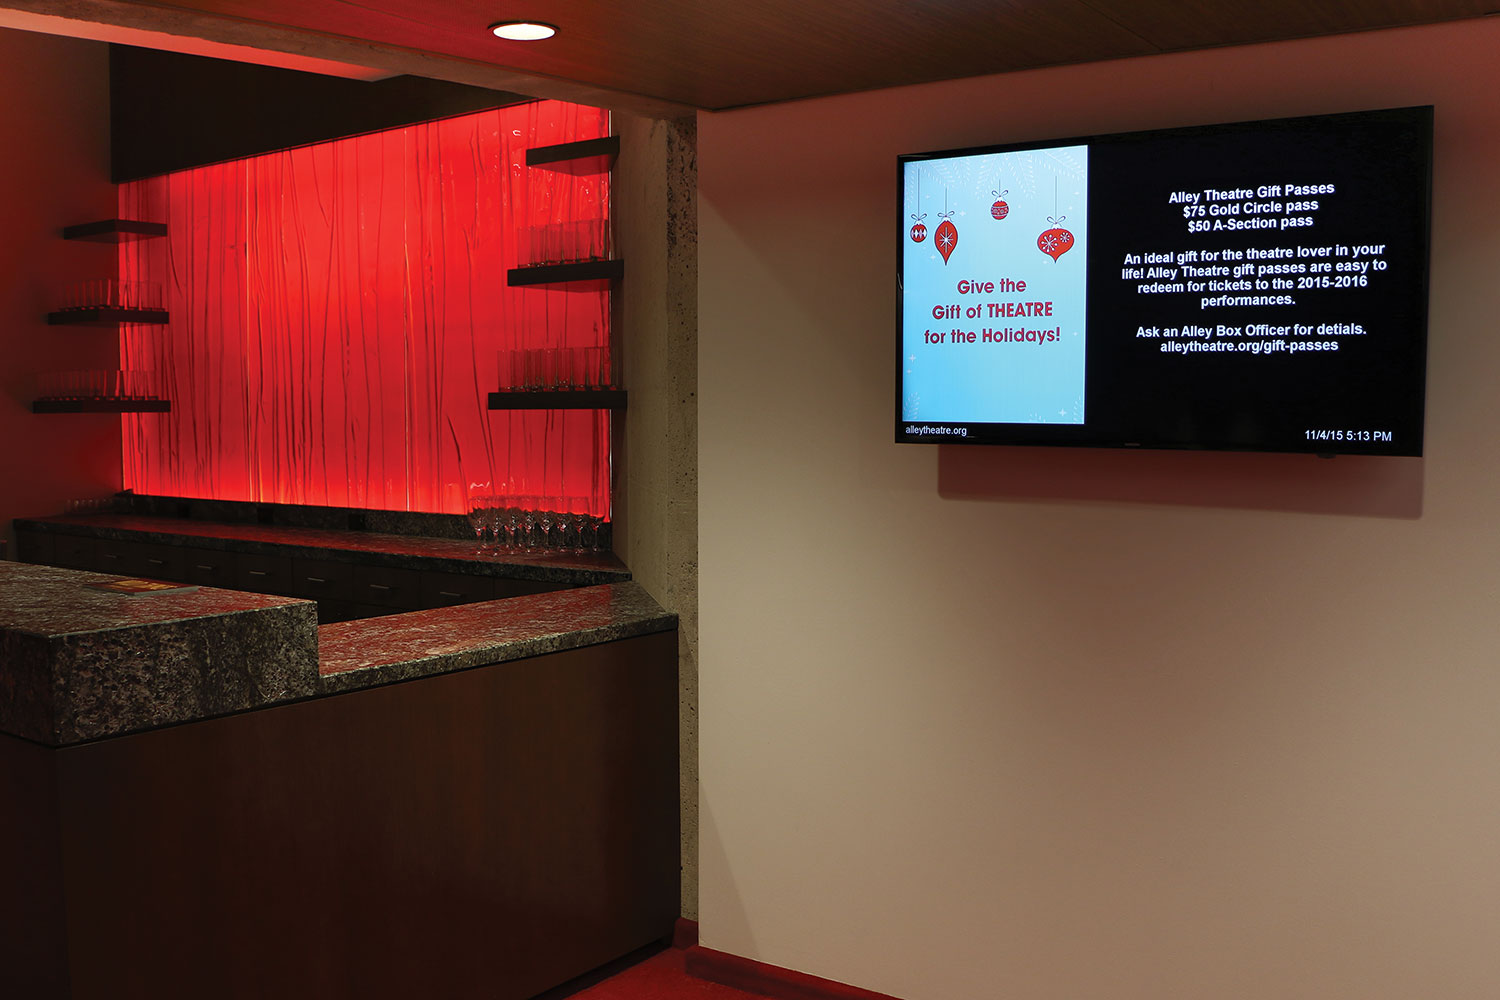 Houstons Alley Theatre Gets New Audio Lobby And Av Infrastructure Black Box Stage Diagram Theater Feiderdesign Large Led Displays Were Installed In Conjunction With A Digital Signage System To Complement The Renovated